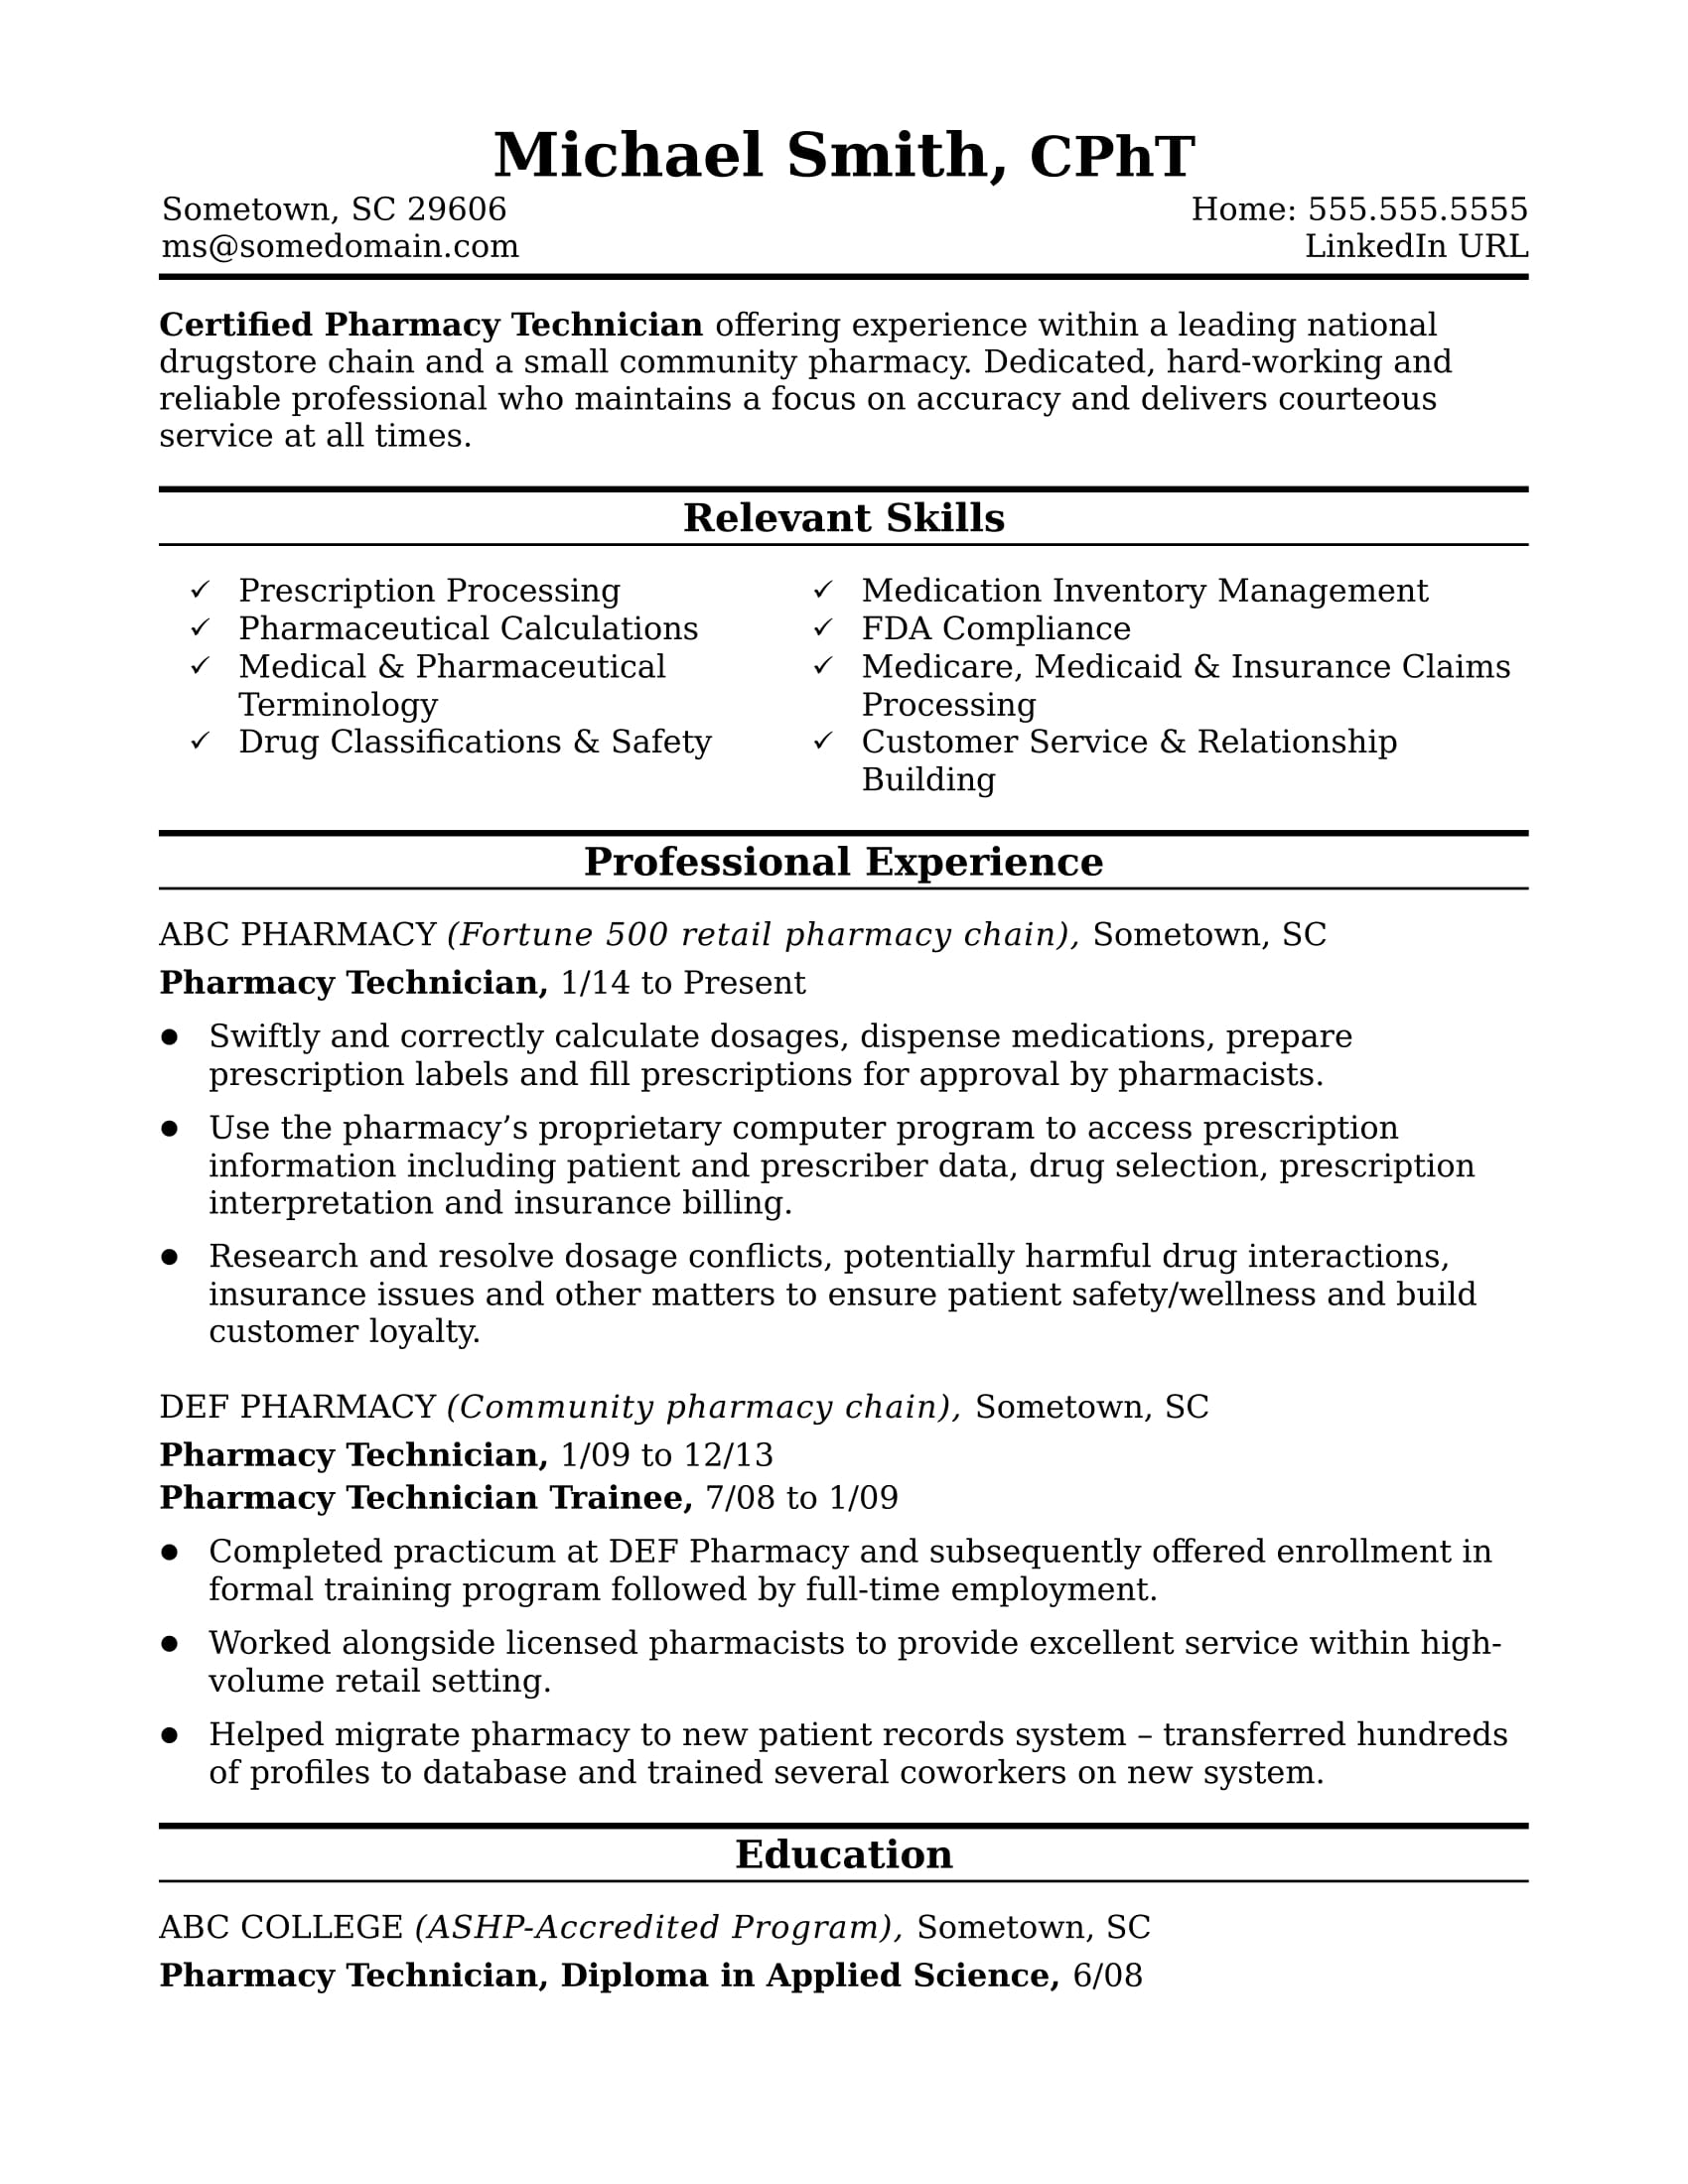 sample resume for a pharmacy technician - Entry Level Pharmacy Technician Resume